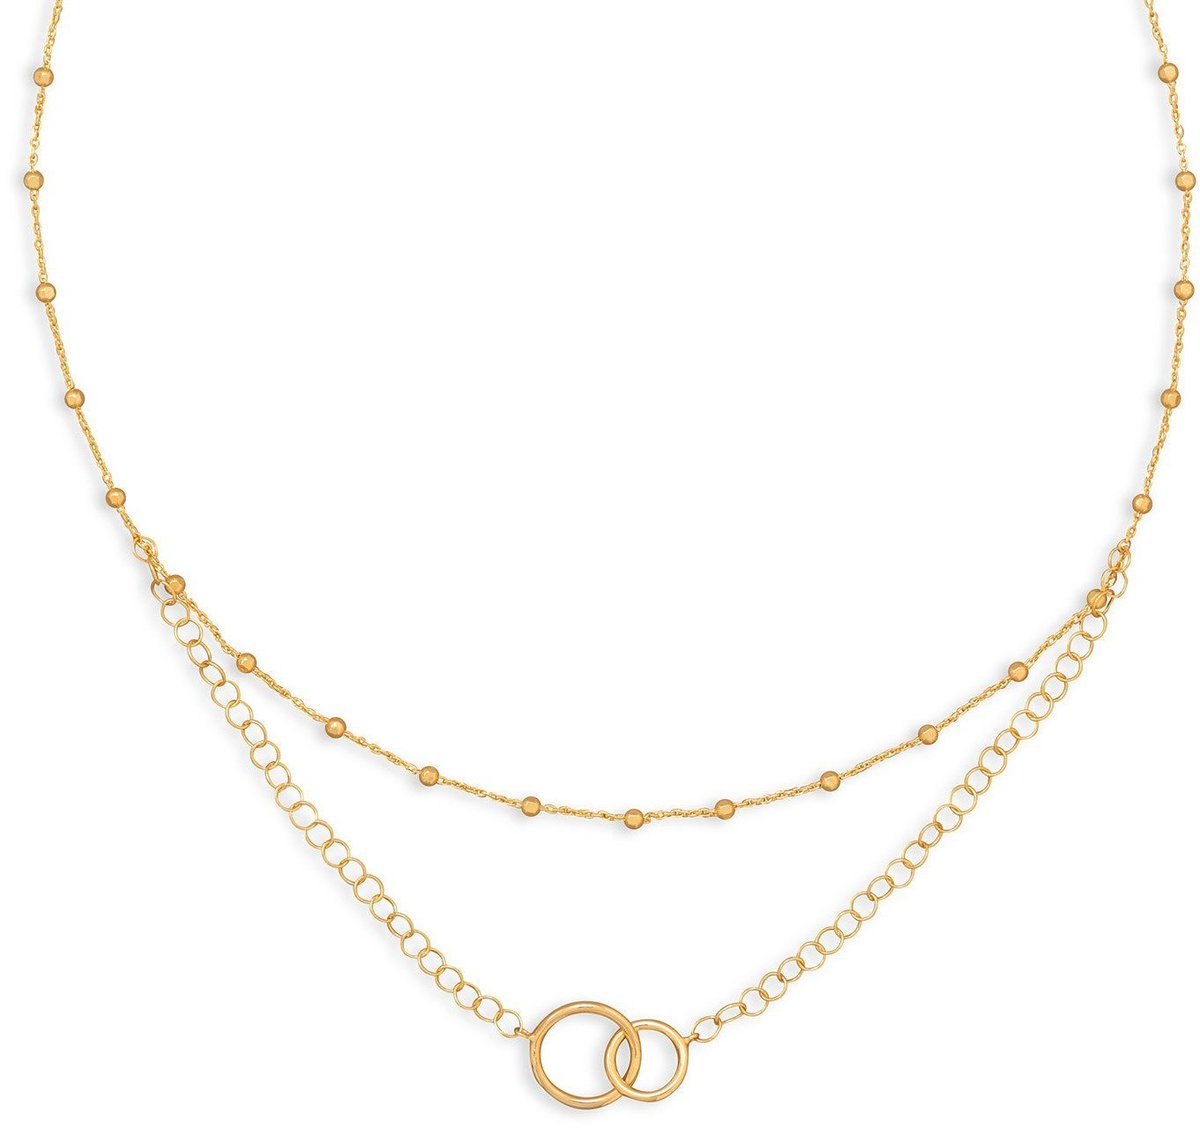 "16"" 14 Karat Gold Plated Multistrand Beaded Necklace with Circle Link 925 Sterling Silver"